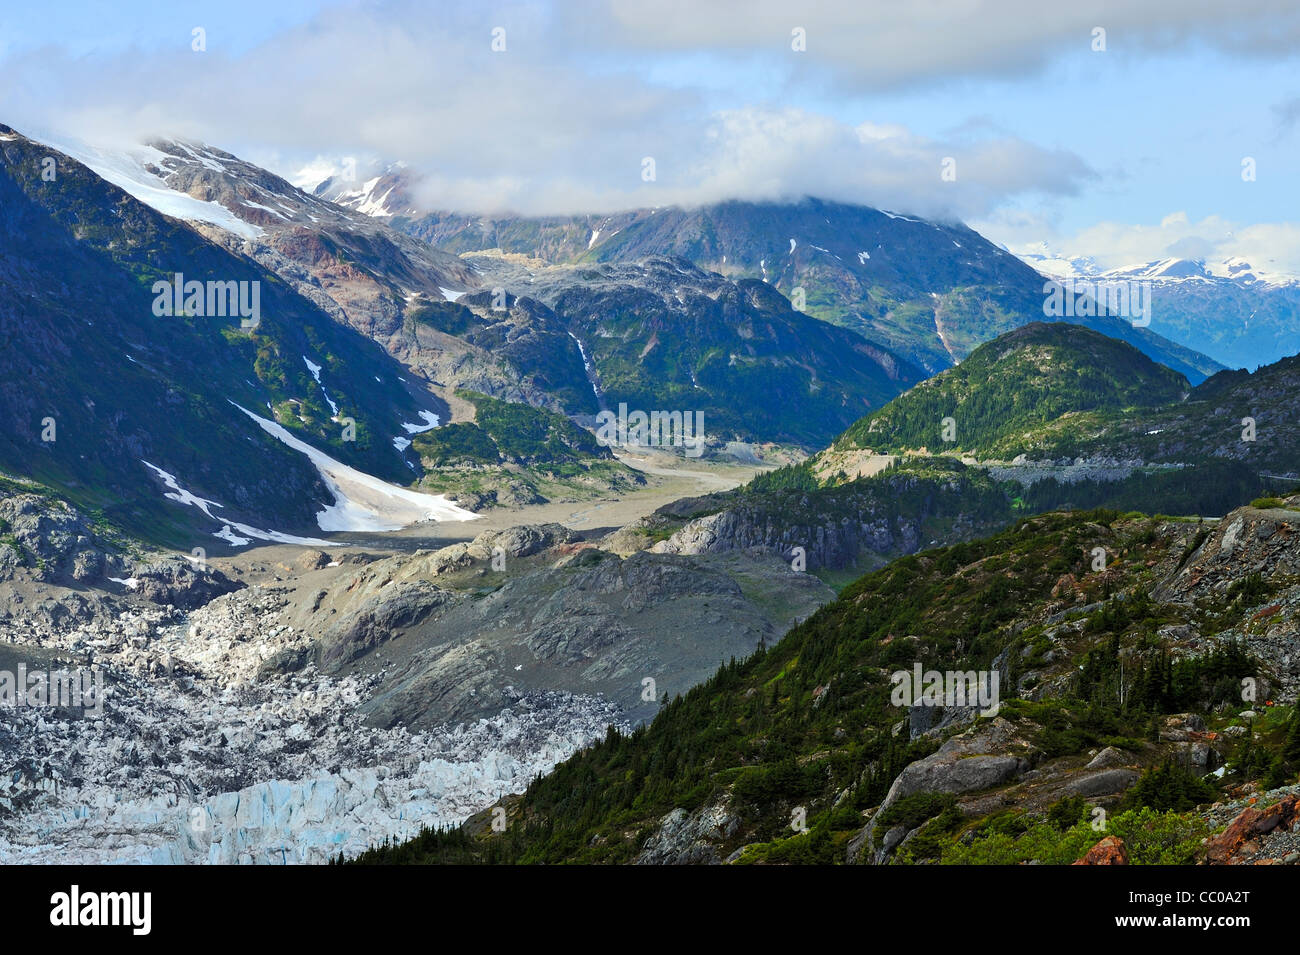 A British Columbia landscape of the rugged terrain of the coastal mountains. - Stock Image